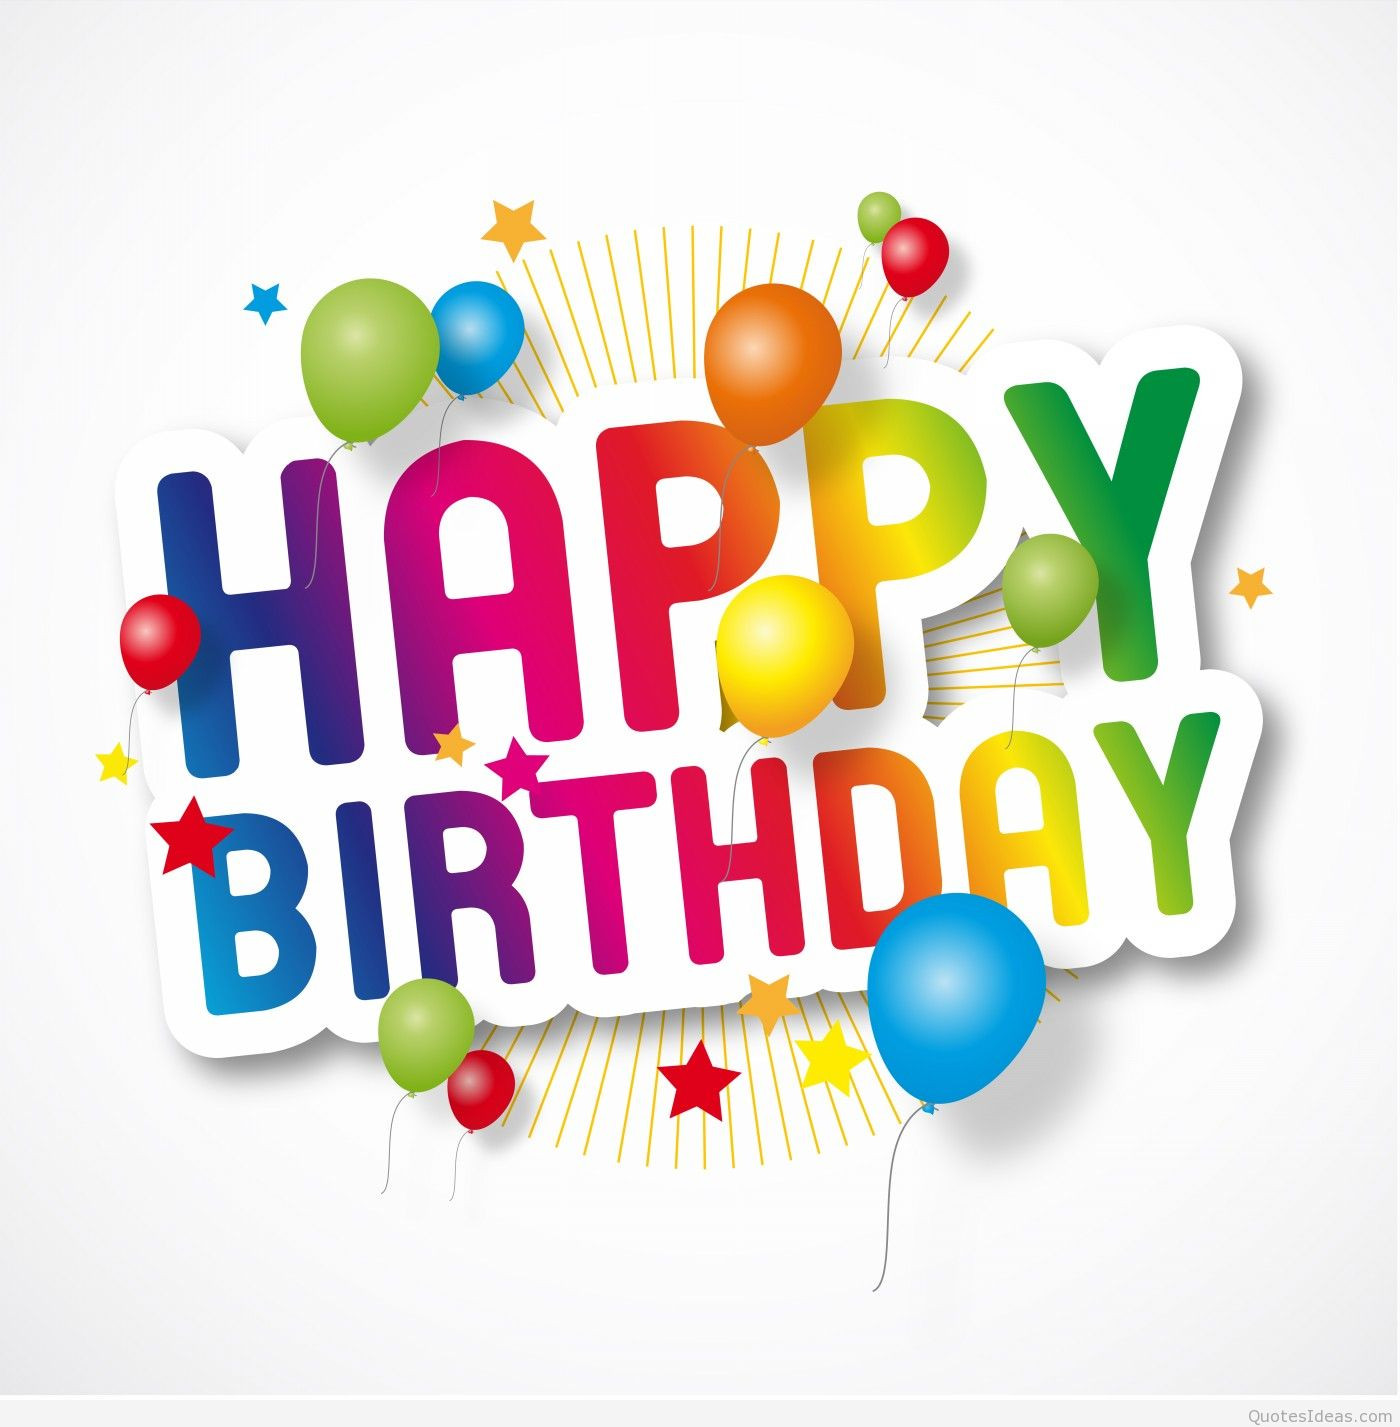 Best ideas about The Birthday Wish . Save or Pin Happy birthday cards wishes messages 2015 2016 Now.